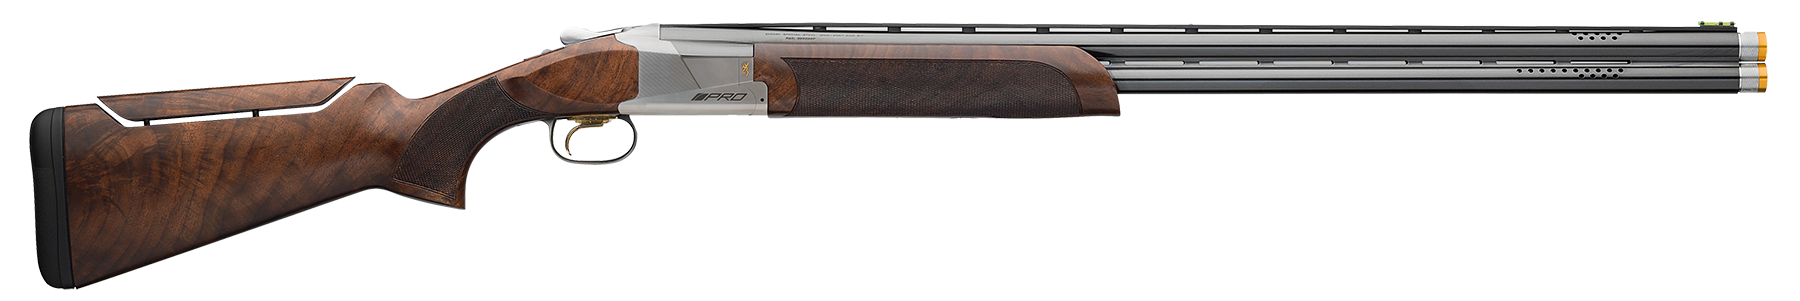 Browning Citori 725 Pro Sporting Over/Under Shotgun 2.75'' 20 Gauge 32'' Silver Nitride Steel/Blued Barrel - Black Walnut Adjustable Comb